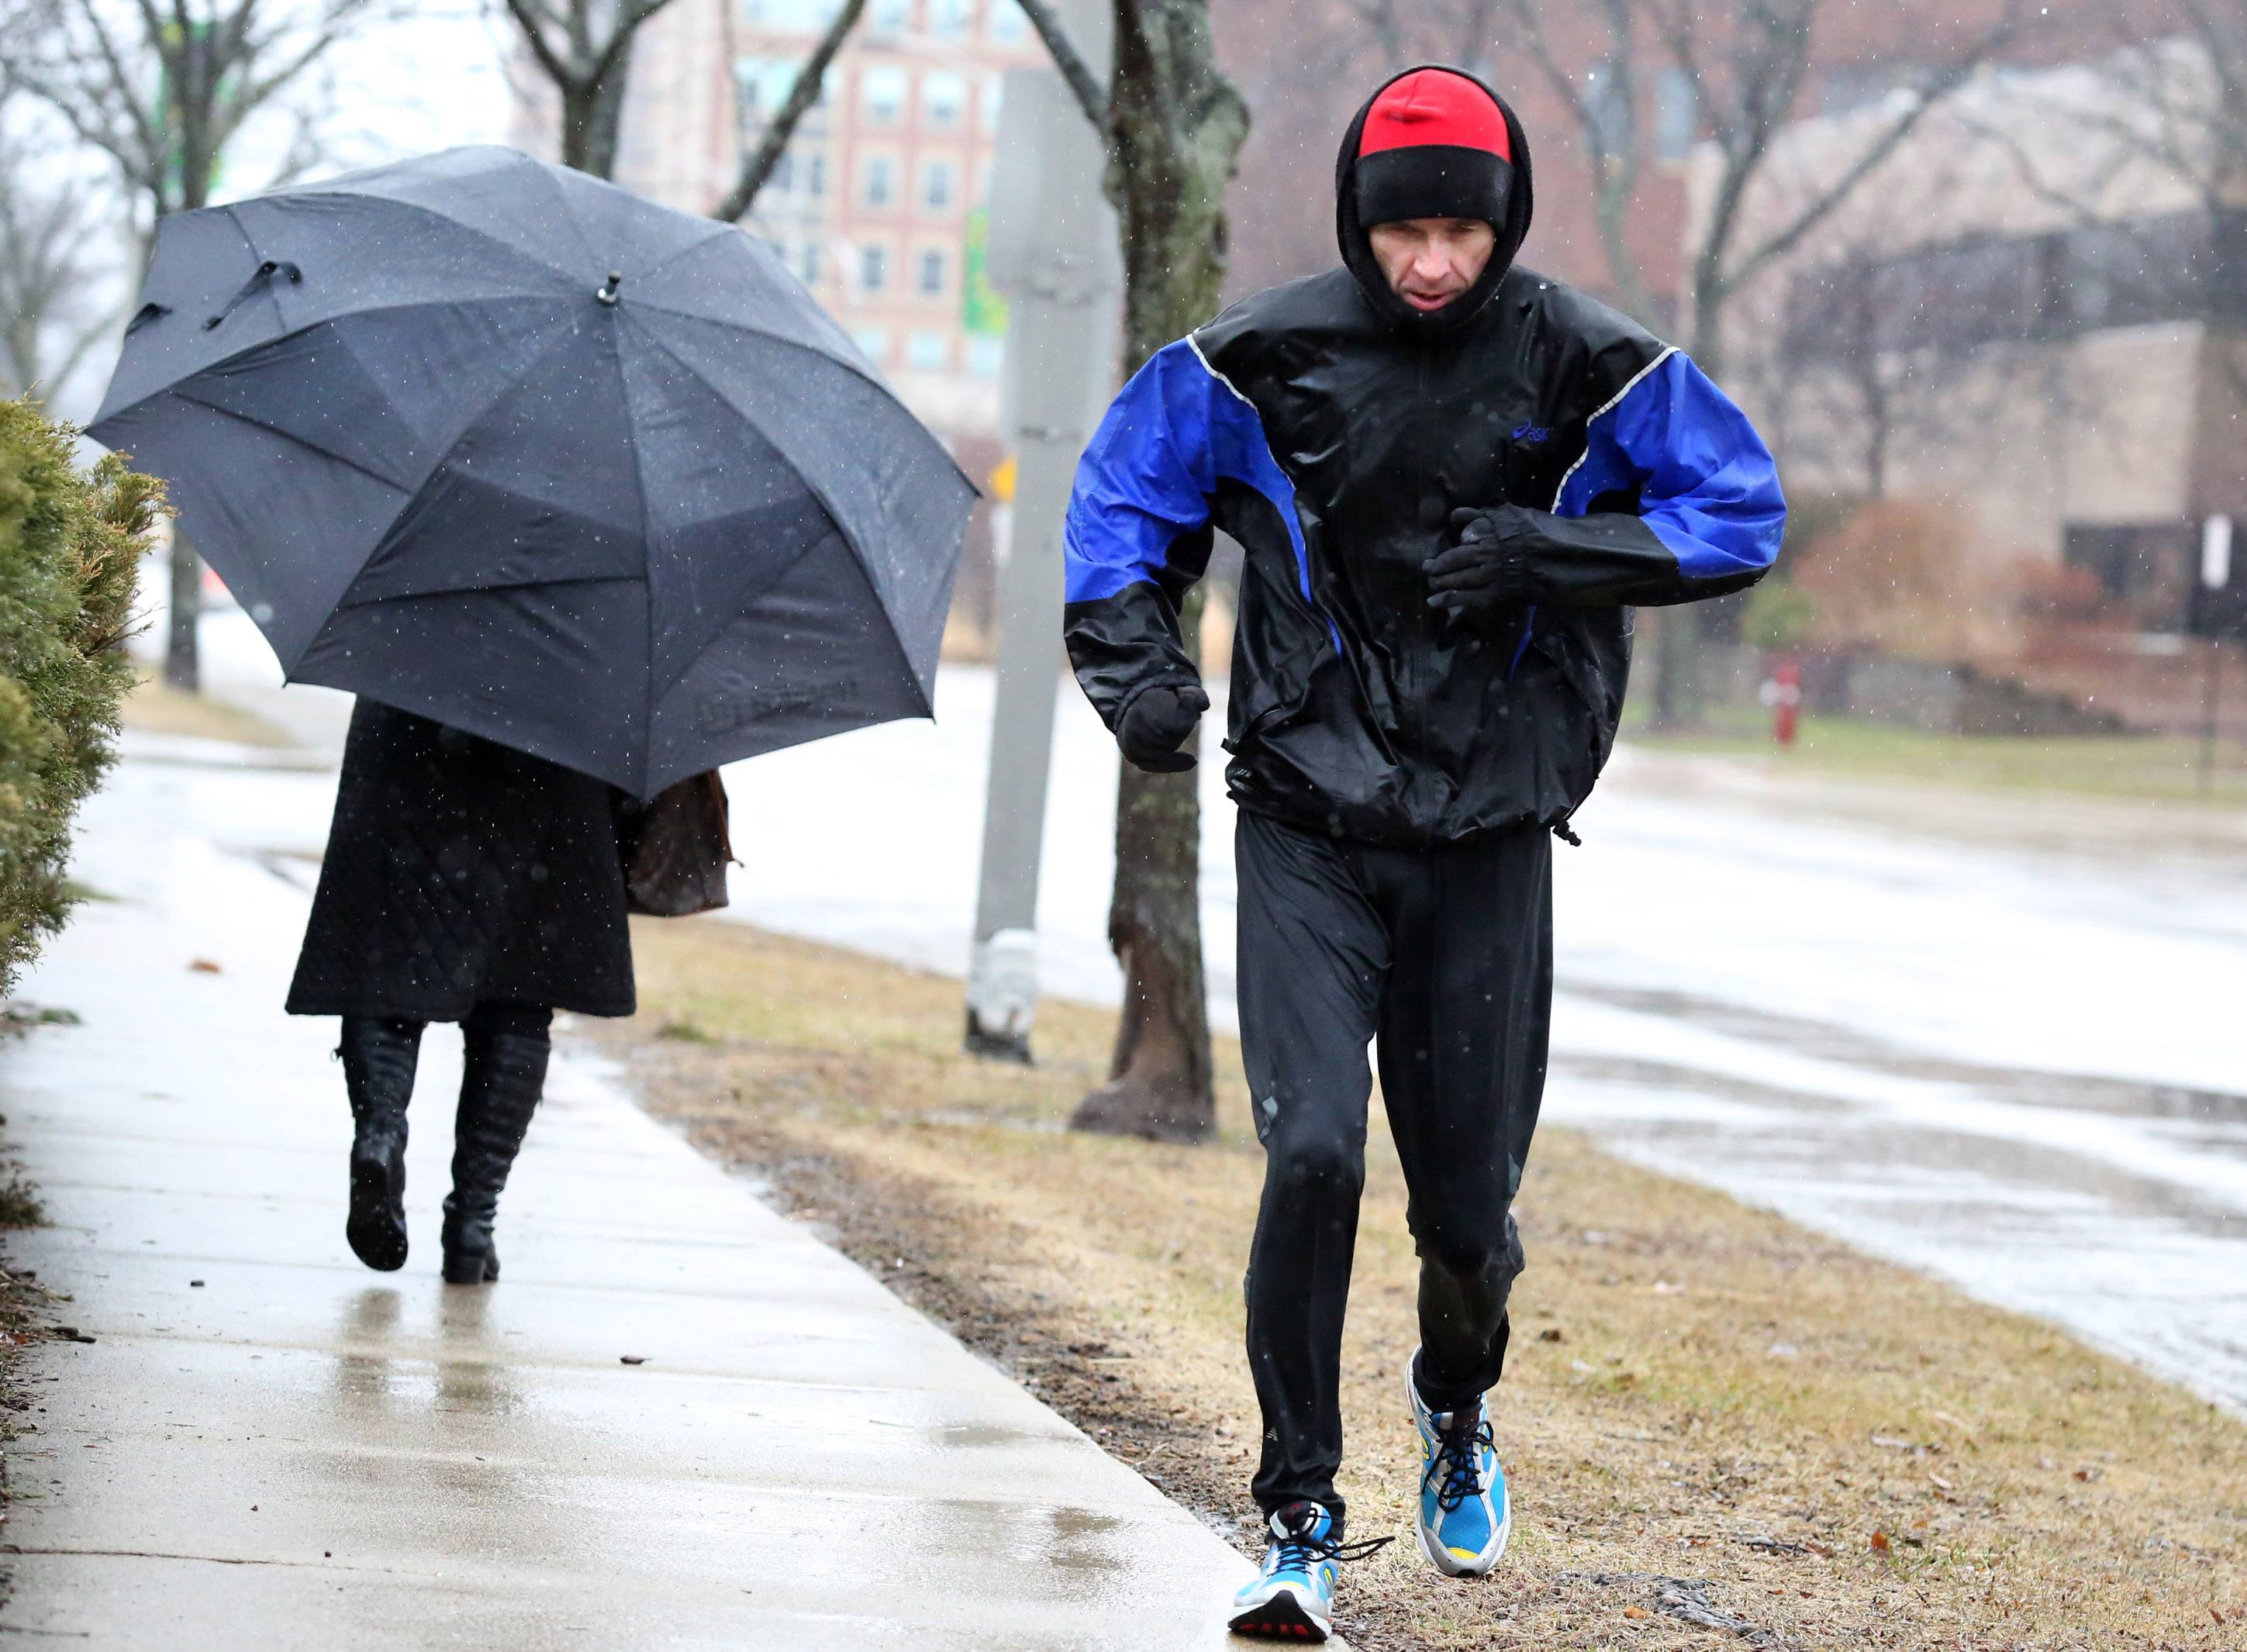 With his hands tucked in his jacket sleeves, Dave Raub of Arlington Heights runs a six-mile route through Arlington Heights in the rain on Thursday. He has run the exact same route almost every day for 31 years.